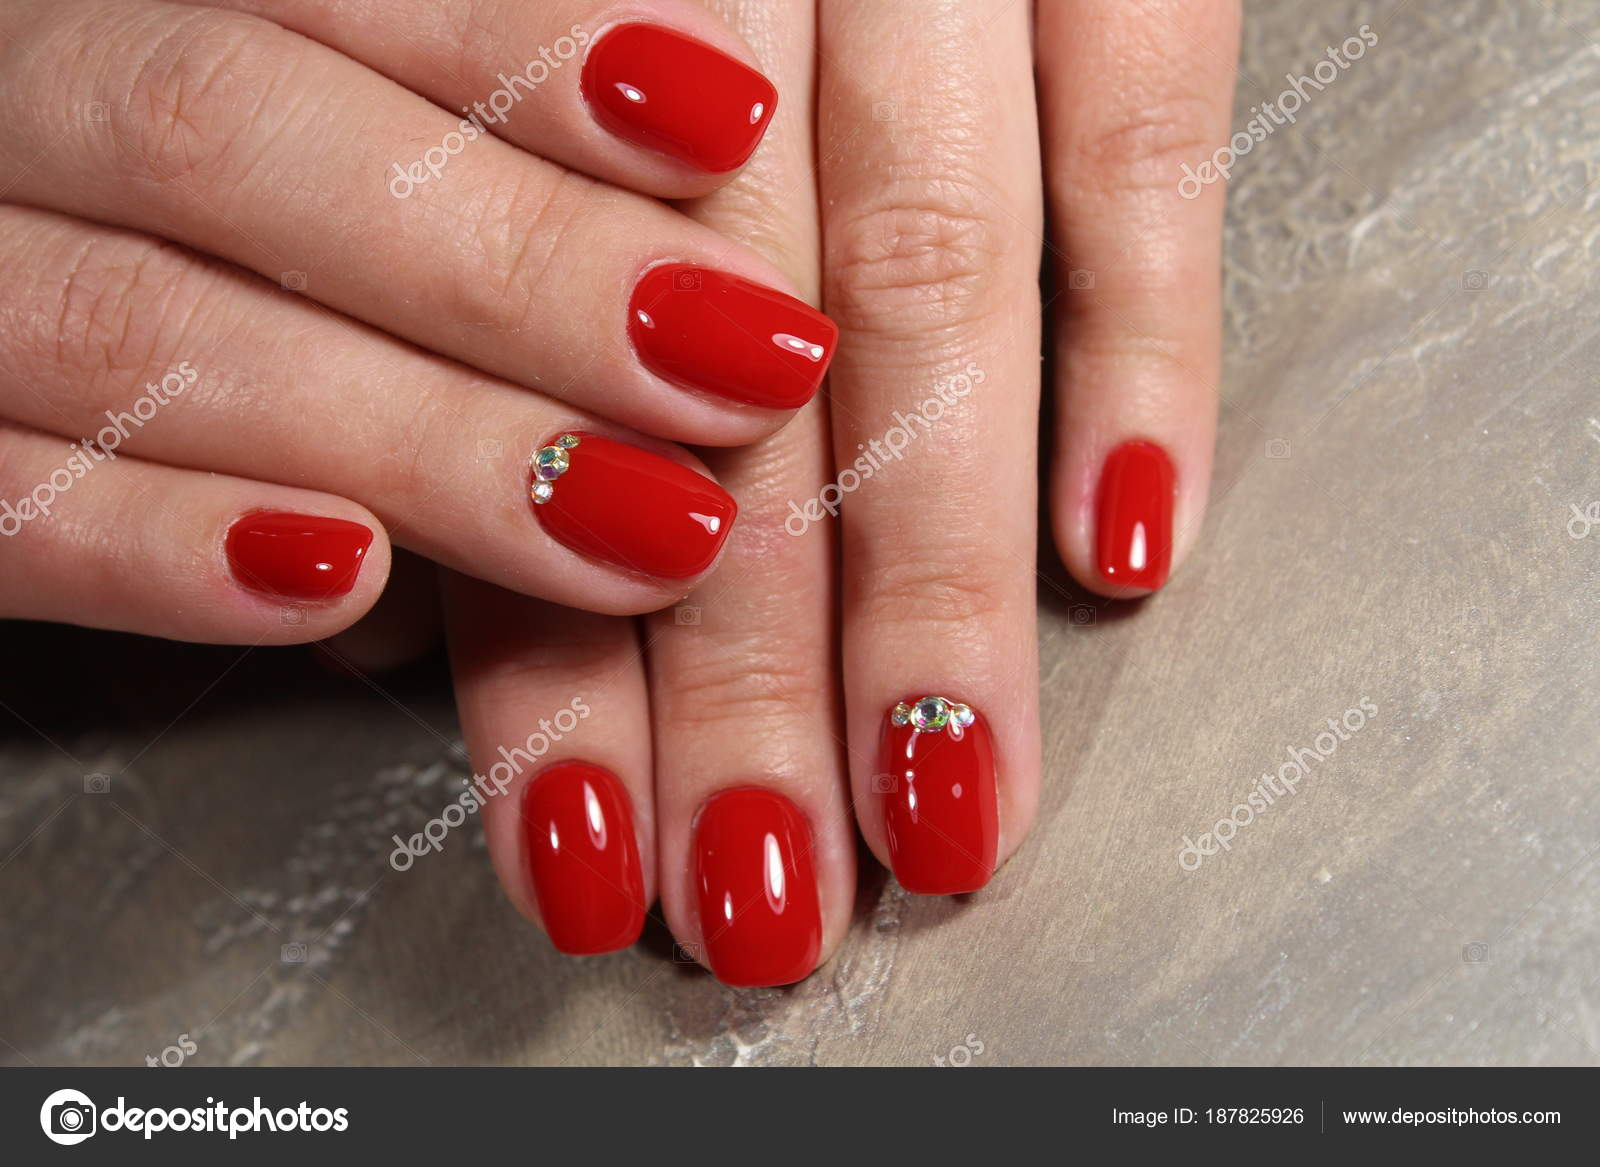 Manicured Nails Colored With Red Nail Polish Stock Photo